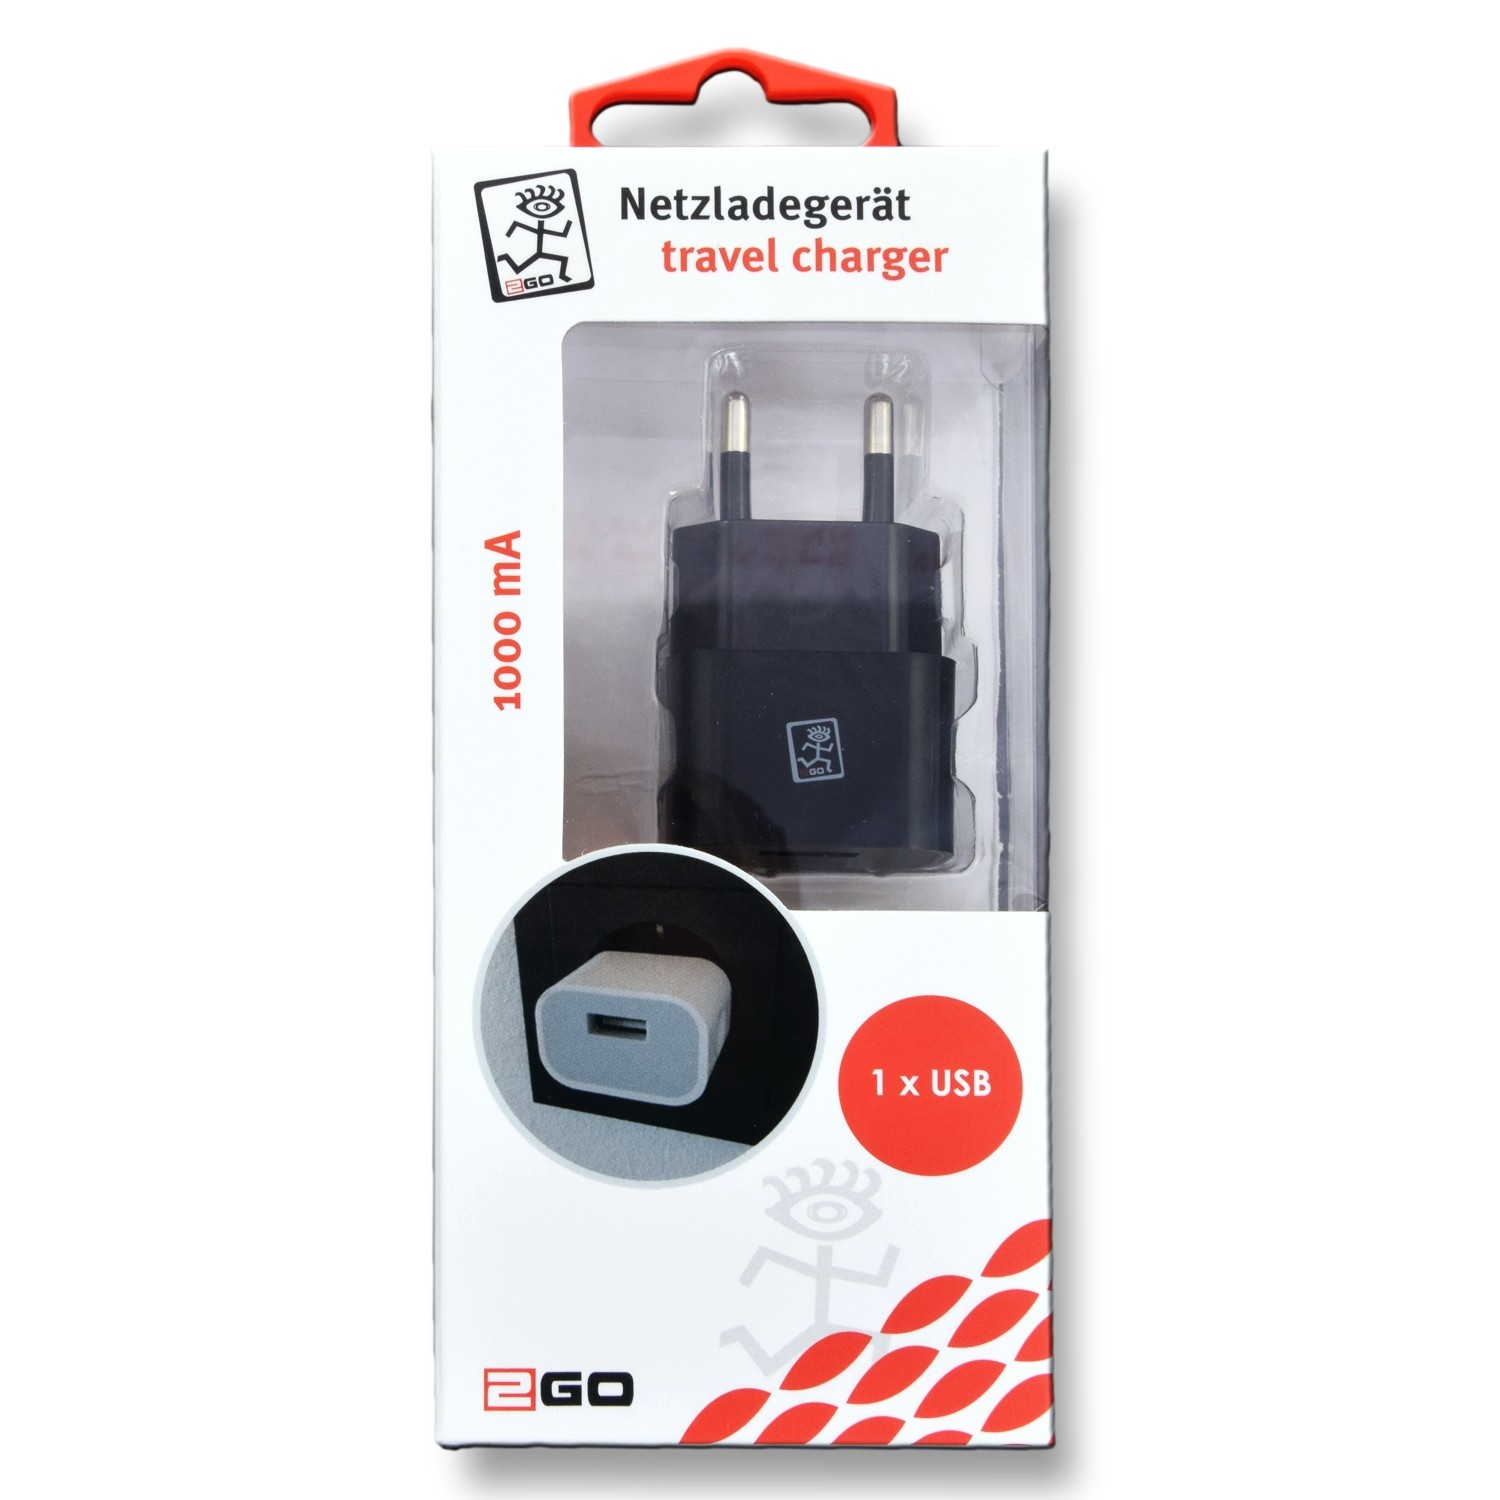 2GO charger with USB connection – Bild 2